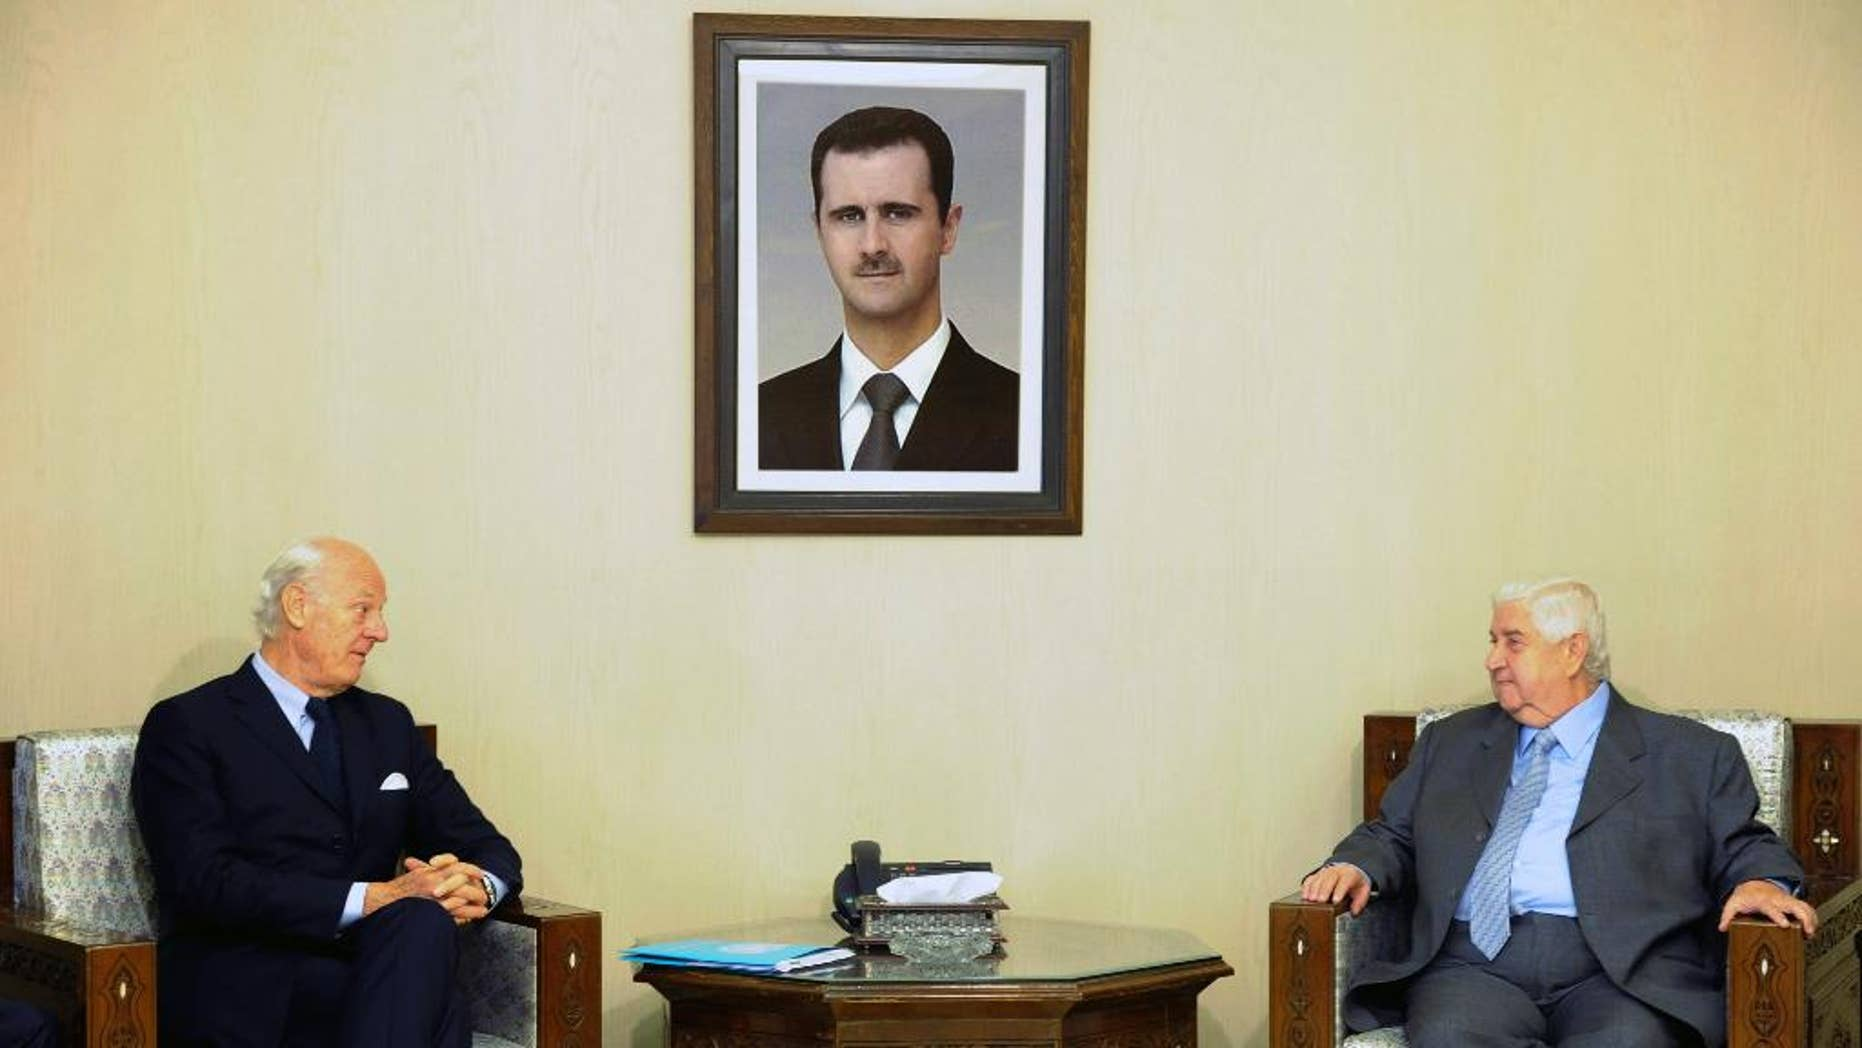 """In this photo released by the Syrian official news agency SANA, Syria's Foreign Minister Walid al-Moallem, right, meets with U.N. Special Envoy for Syria Staffan de Mistura in Damascus, Syria, Sunday, Nov. 1, 2015. Al-Moallem said """"important"""" points were made during international talks aimed at reviving the peace process but that negotiators failed to convince his government's foes to curb their support for """"terrorism."""" (SANA via AP)"""